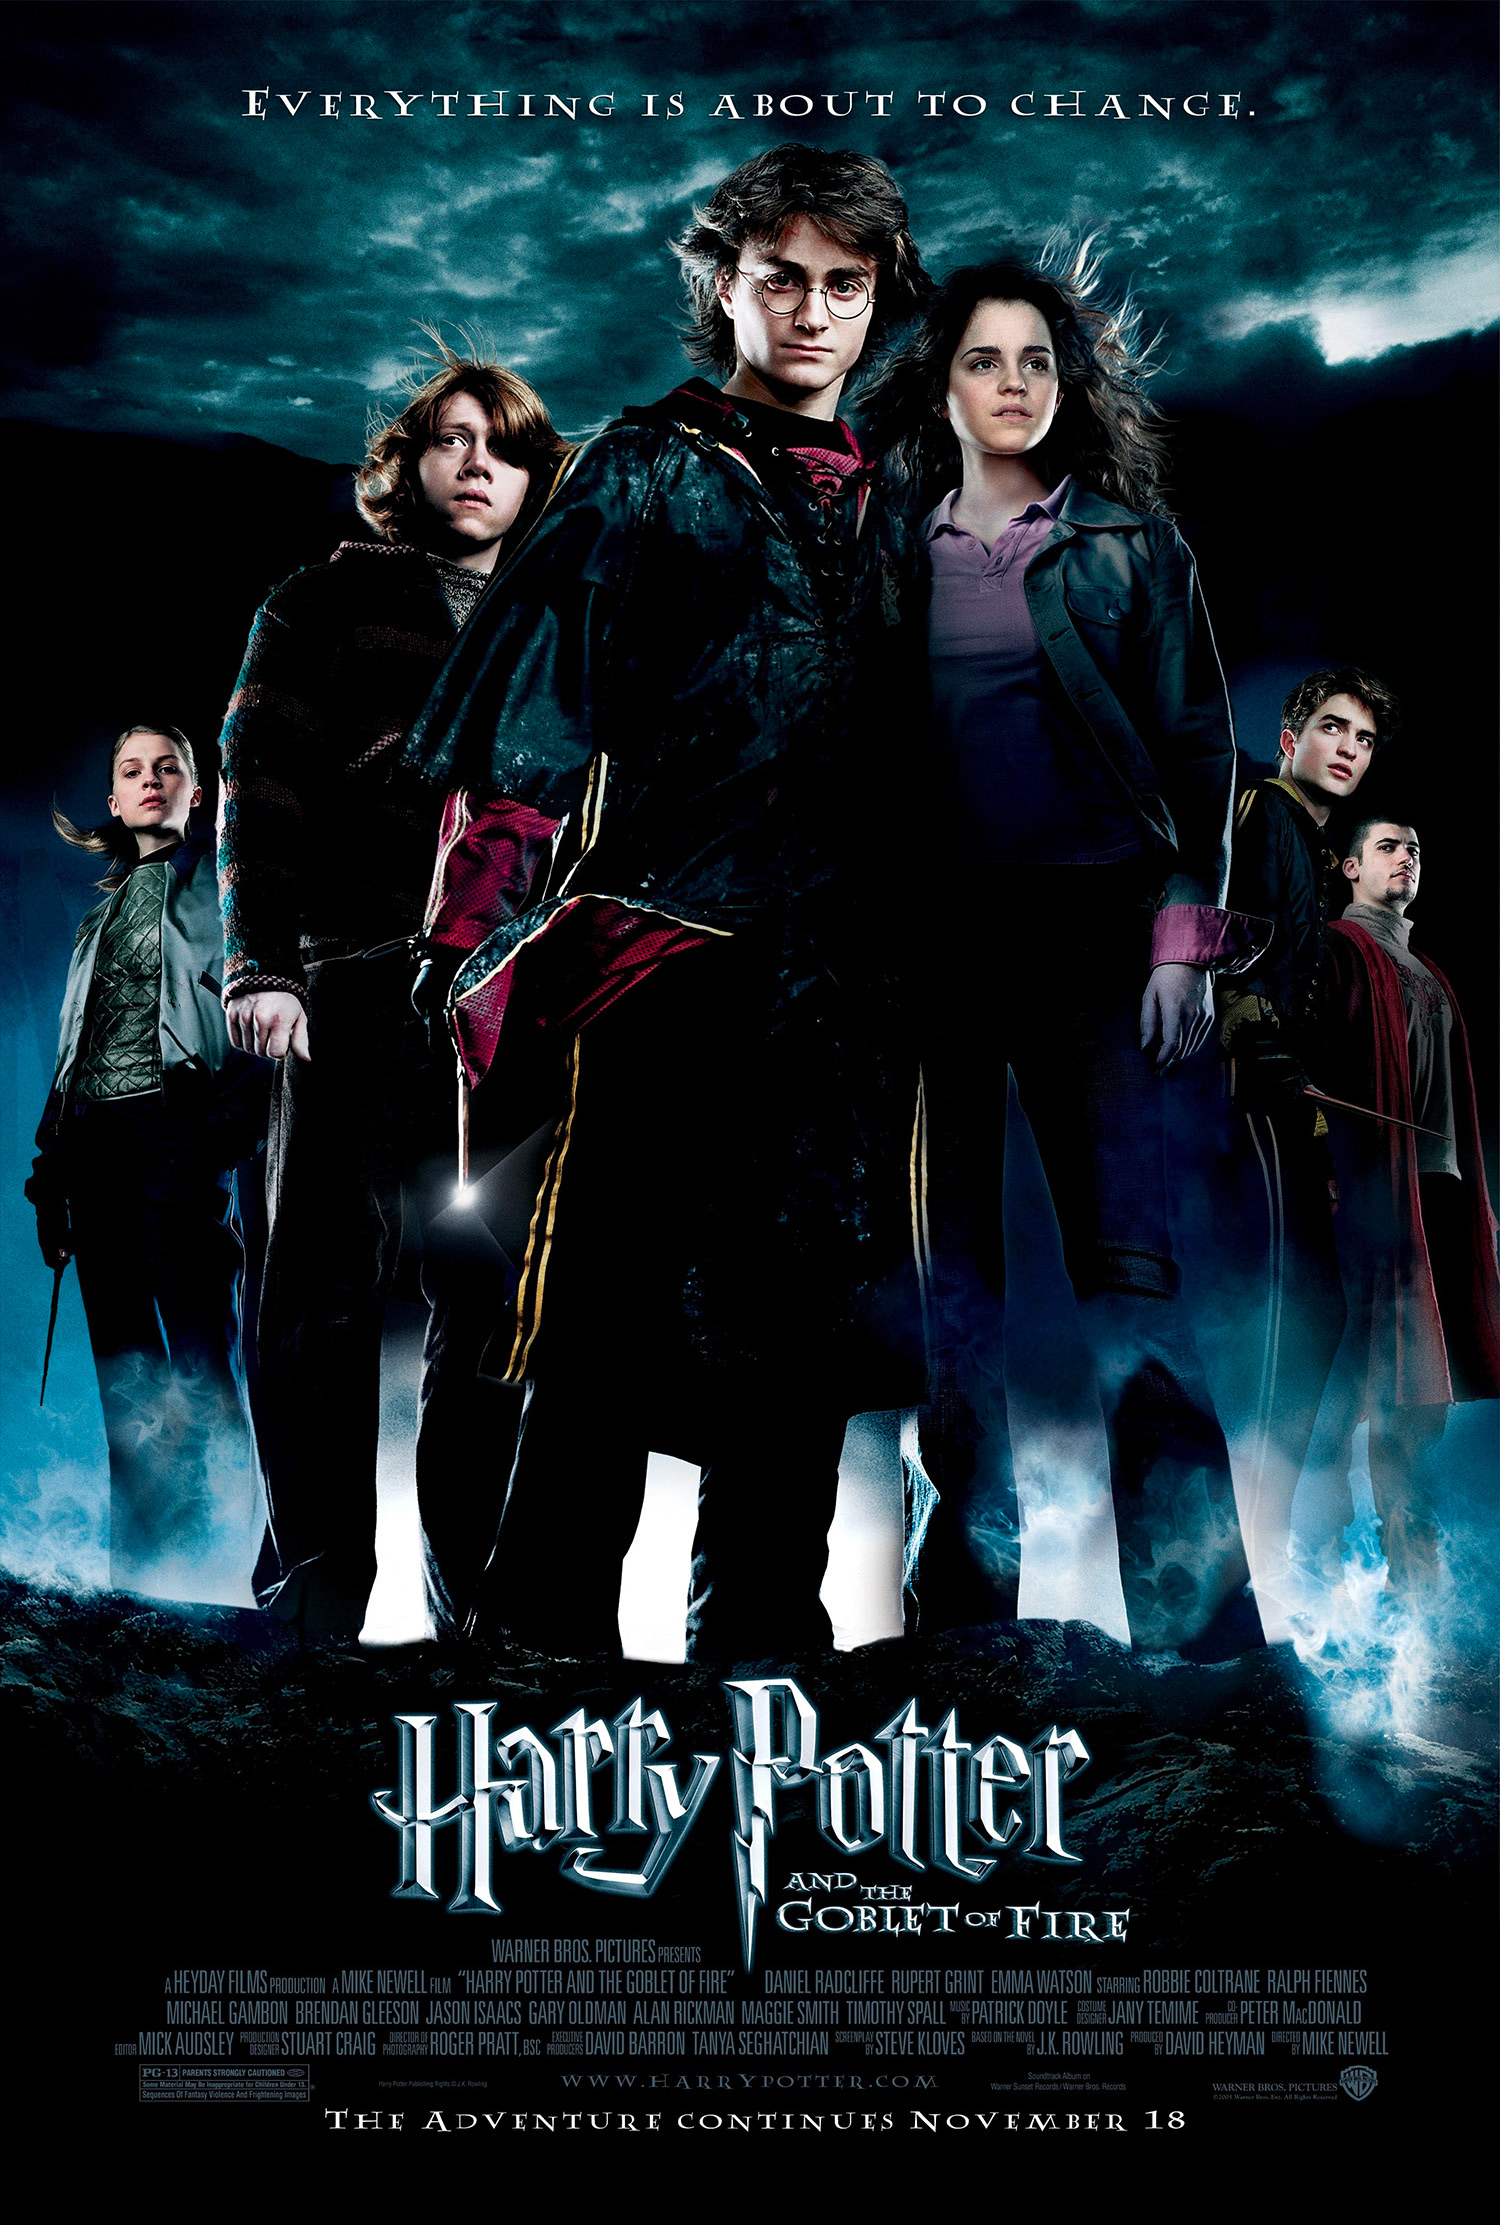 'Goblet of Fire' theatrical poster